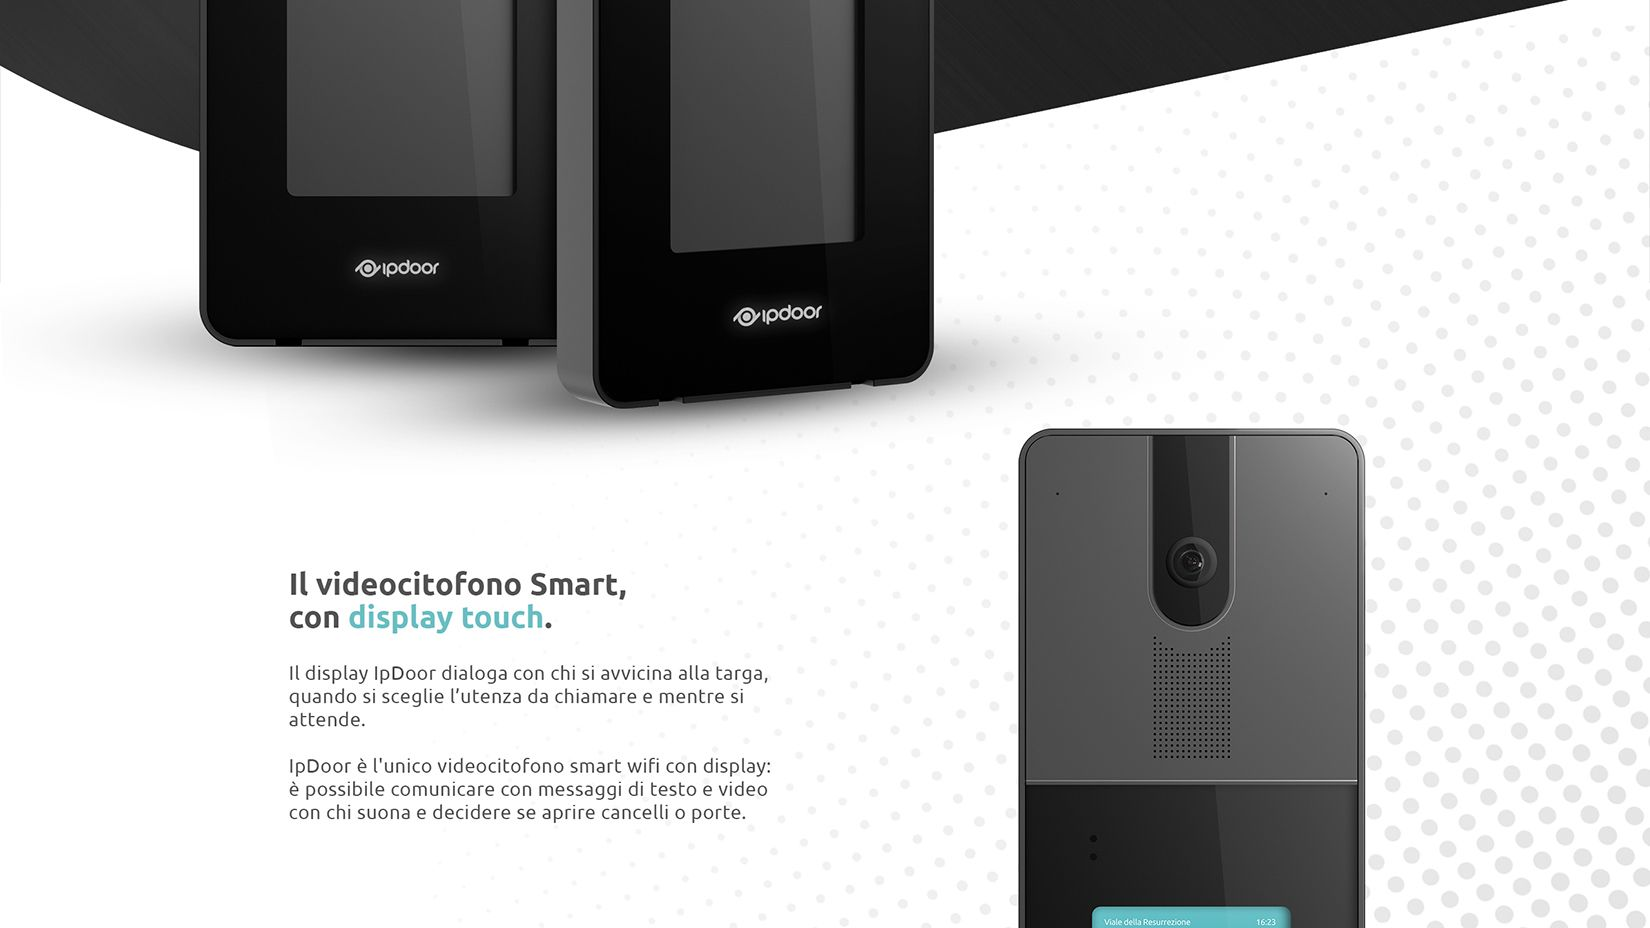 Product Design Industrial Design Videocitofono Smart IpDoor 2